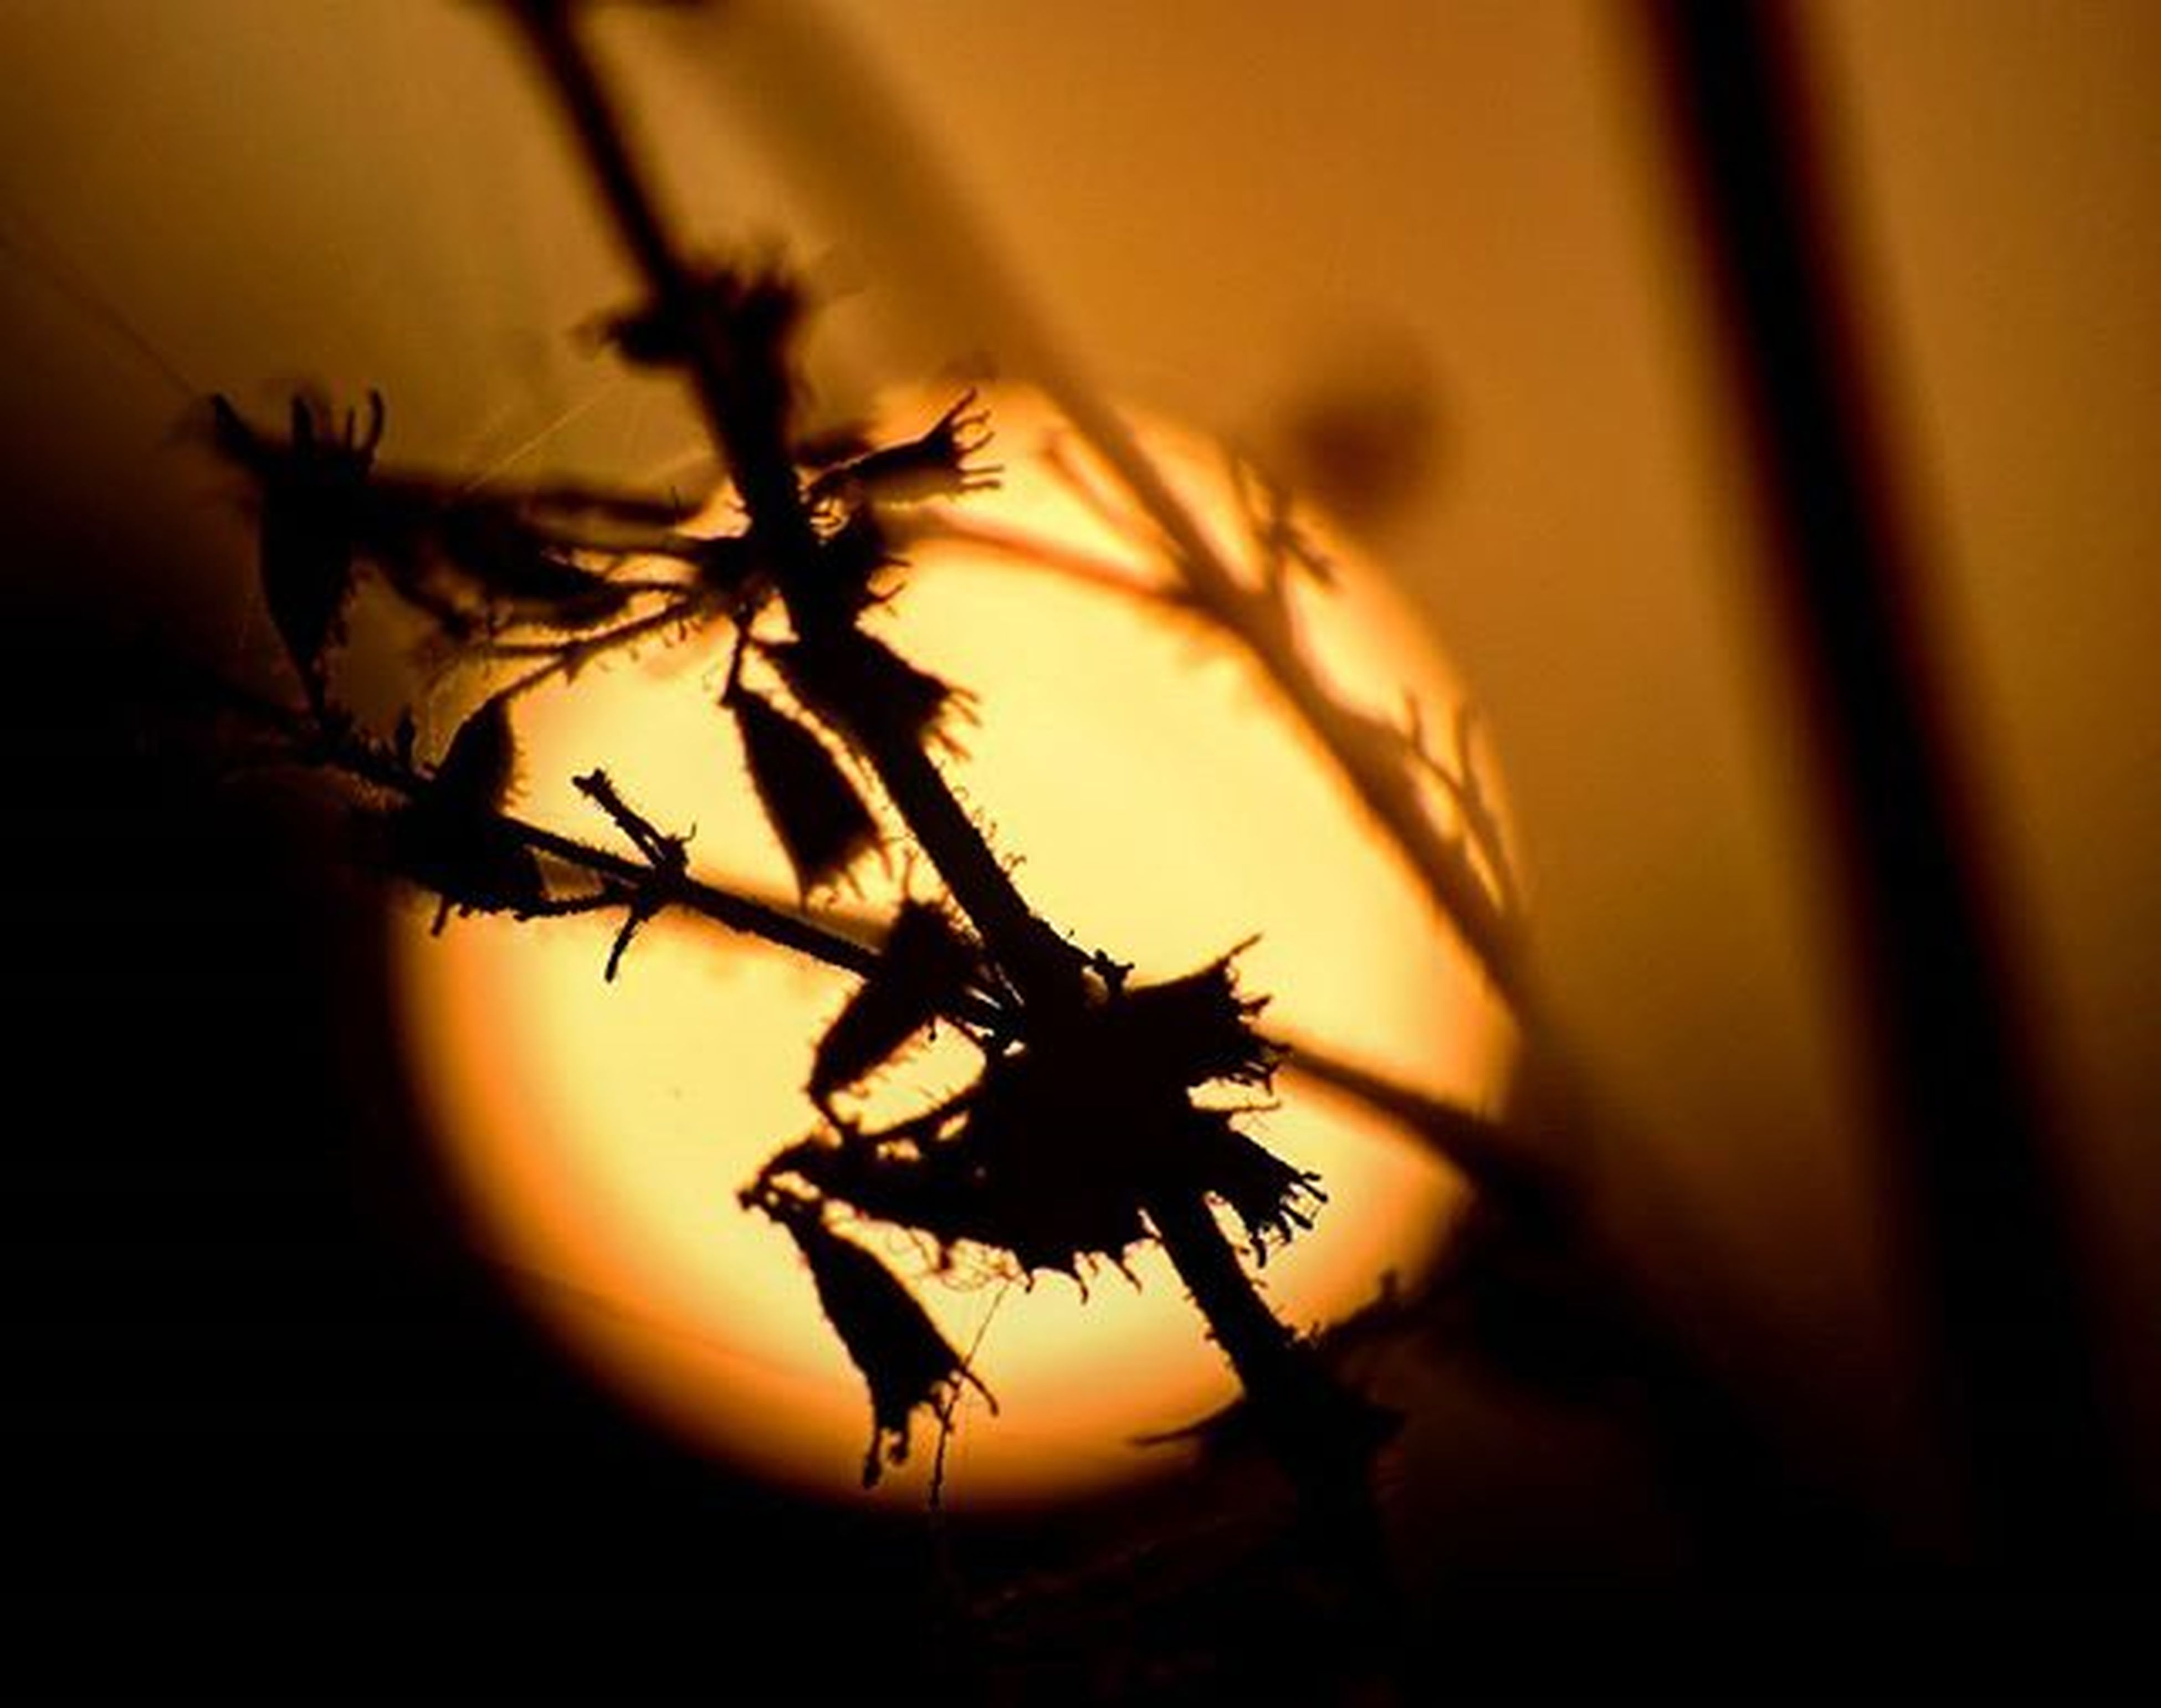 sunset, orange color, silhouette, close-up, focus on foreground, nature, beauty in nature, growth, plant, selective focus, tranquility, sky, stem, yellow, indoors, no people, leaf, sun, scenics